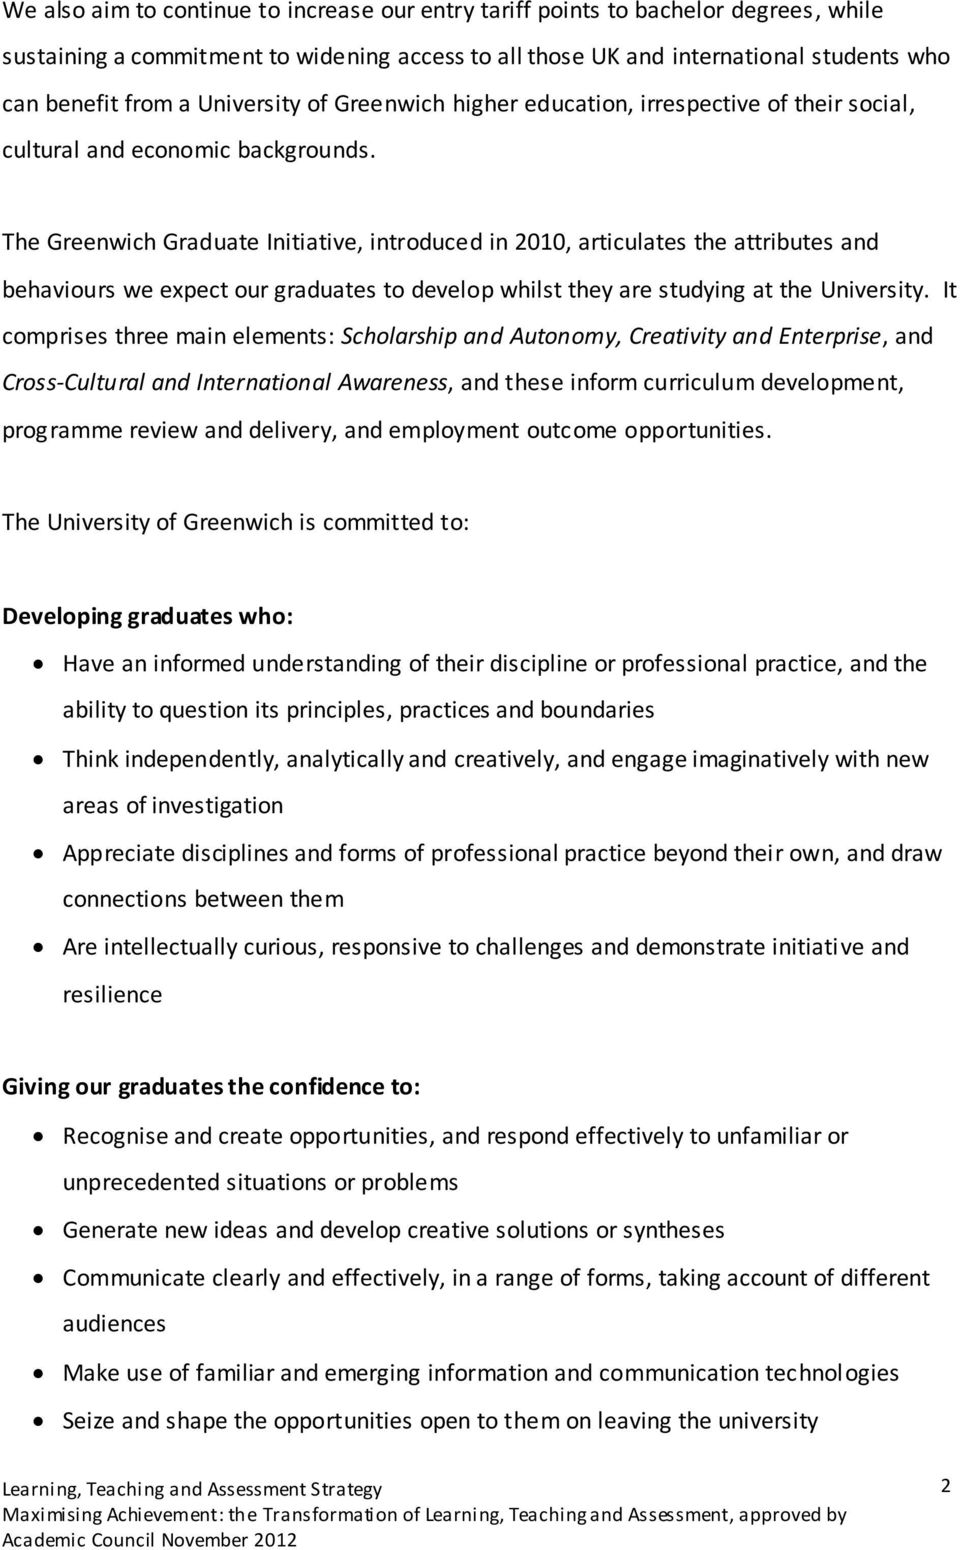 The Greenwich Graduate Initiative, introduced in 2010, articulates the attributes and behaviours we expect our graduates to develop whilst they are studying at the University.